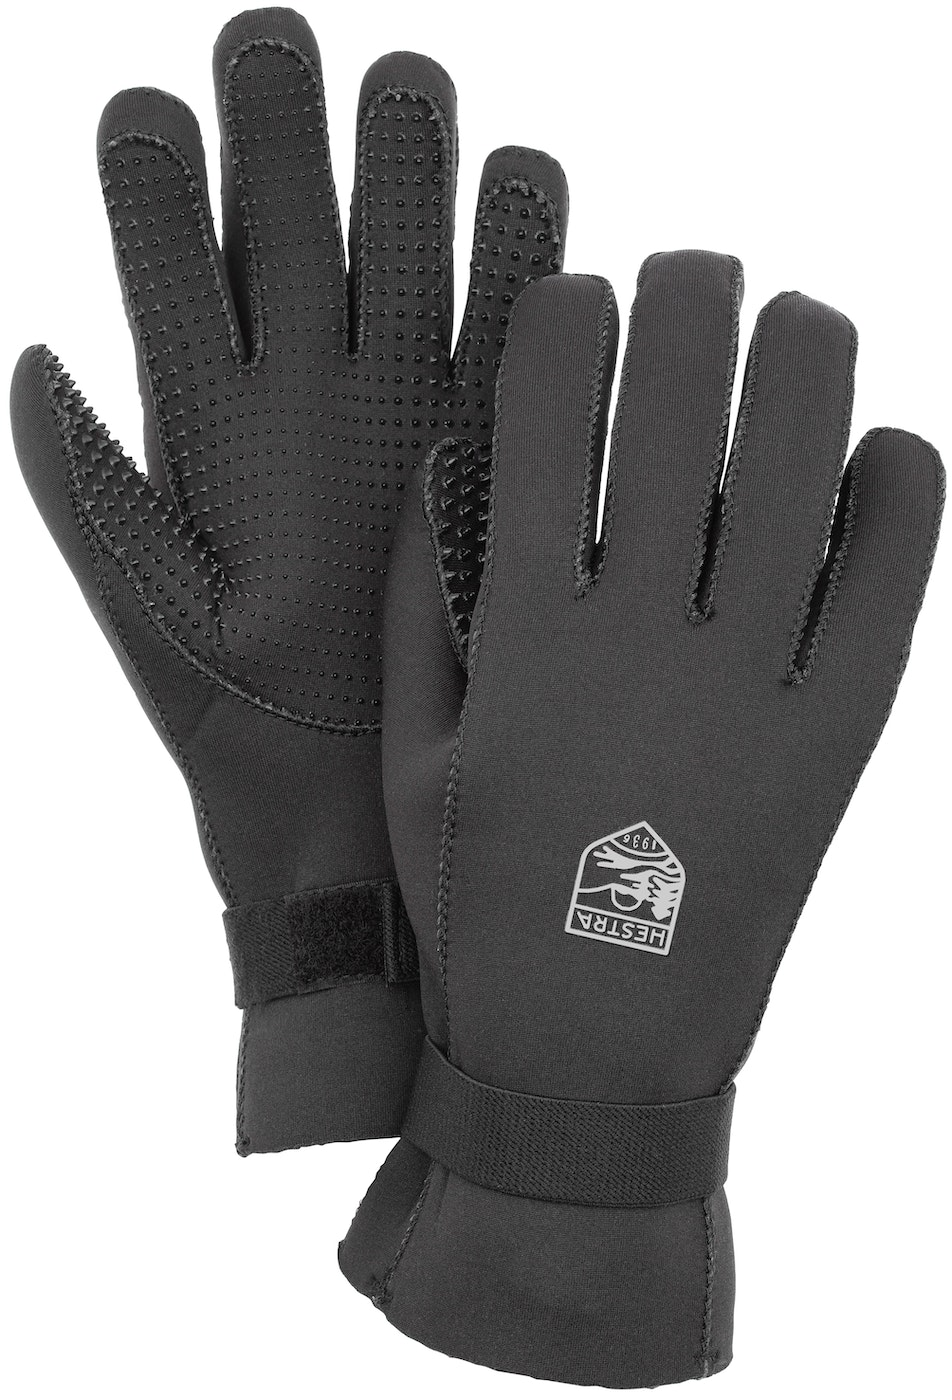 Product image for 31290 Neoprene Glove